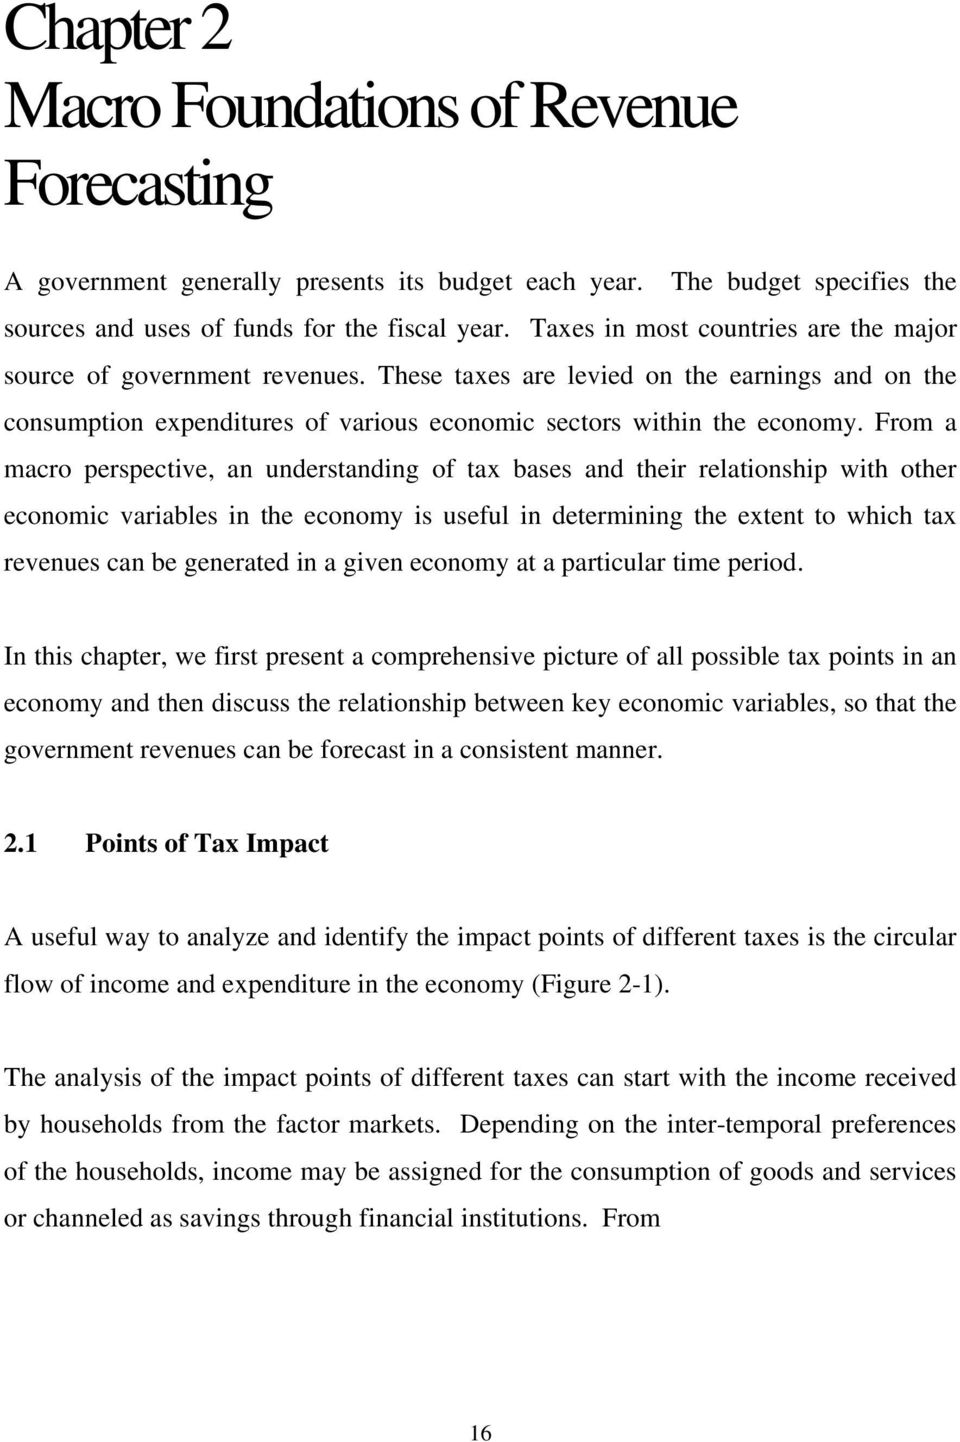 From a macro perspective, an understanding of tax bases and their relationship with other economic variables in the economy is useful in determining the extent to which tax revenues can be generated